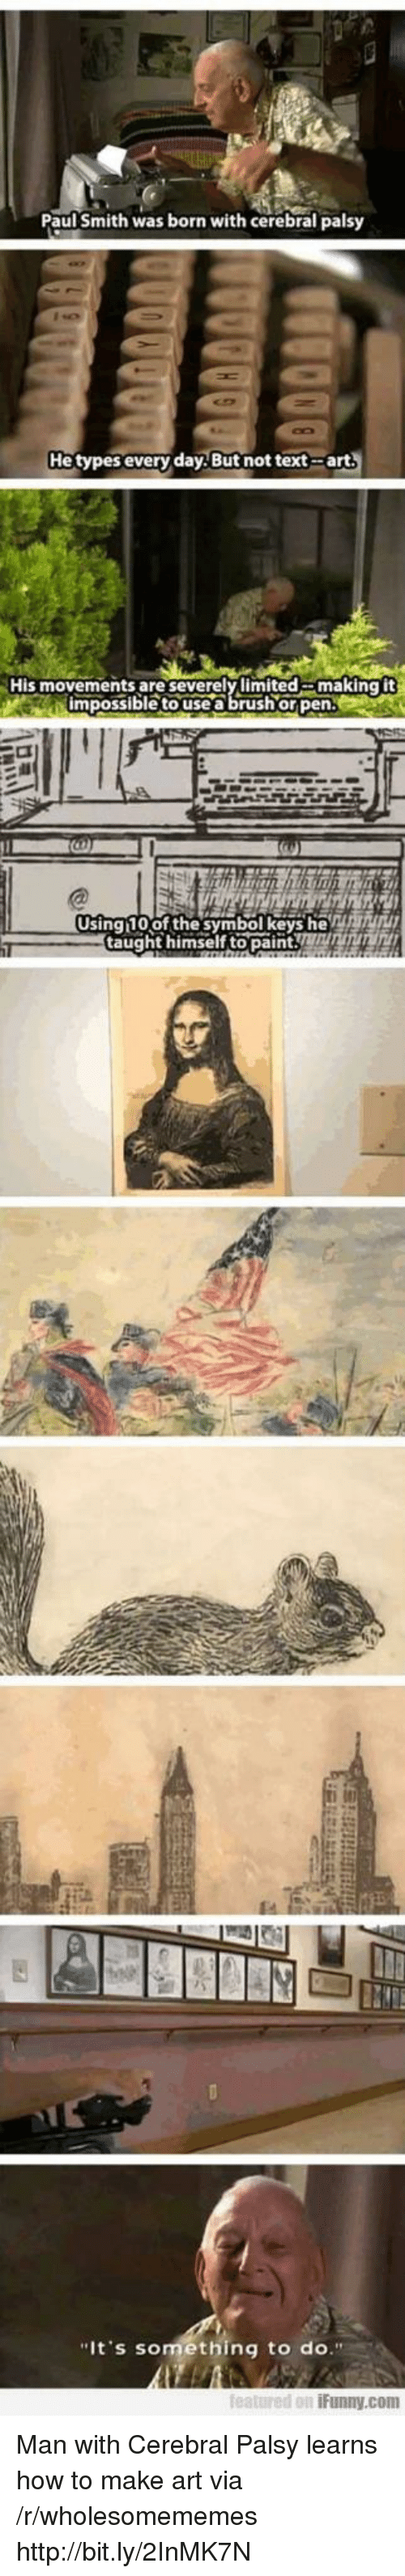 """Featured: Paul Smith was born with cerebral palsy  He types every day But not text-arts  His movements are severelylimited  making it  impossible to use a brush or pen  Using 10of the symbol keys heT  taught himself topaintTTT  """"It's something to do.""""  featured on iFunny.com Man with Cerebral Palsy learns how to make art via /r/wholesomememes http://bit.ly/2InMK7N"""